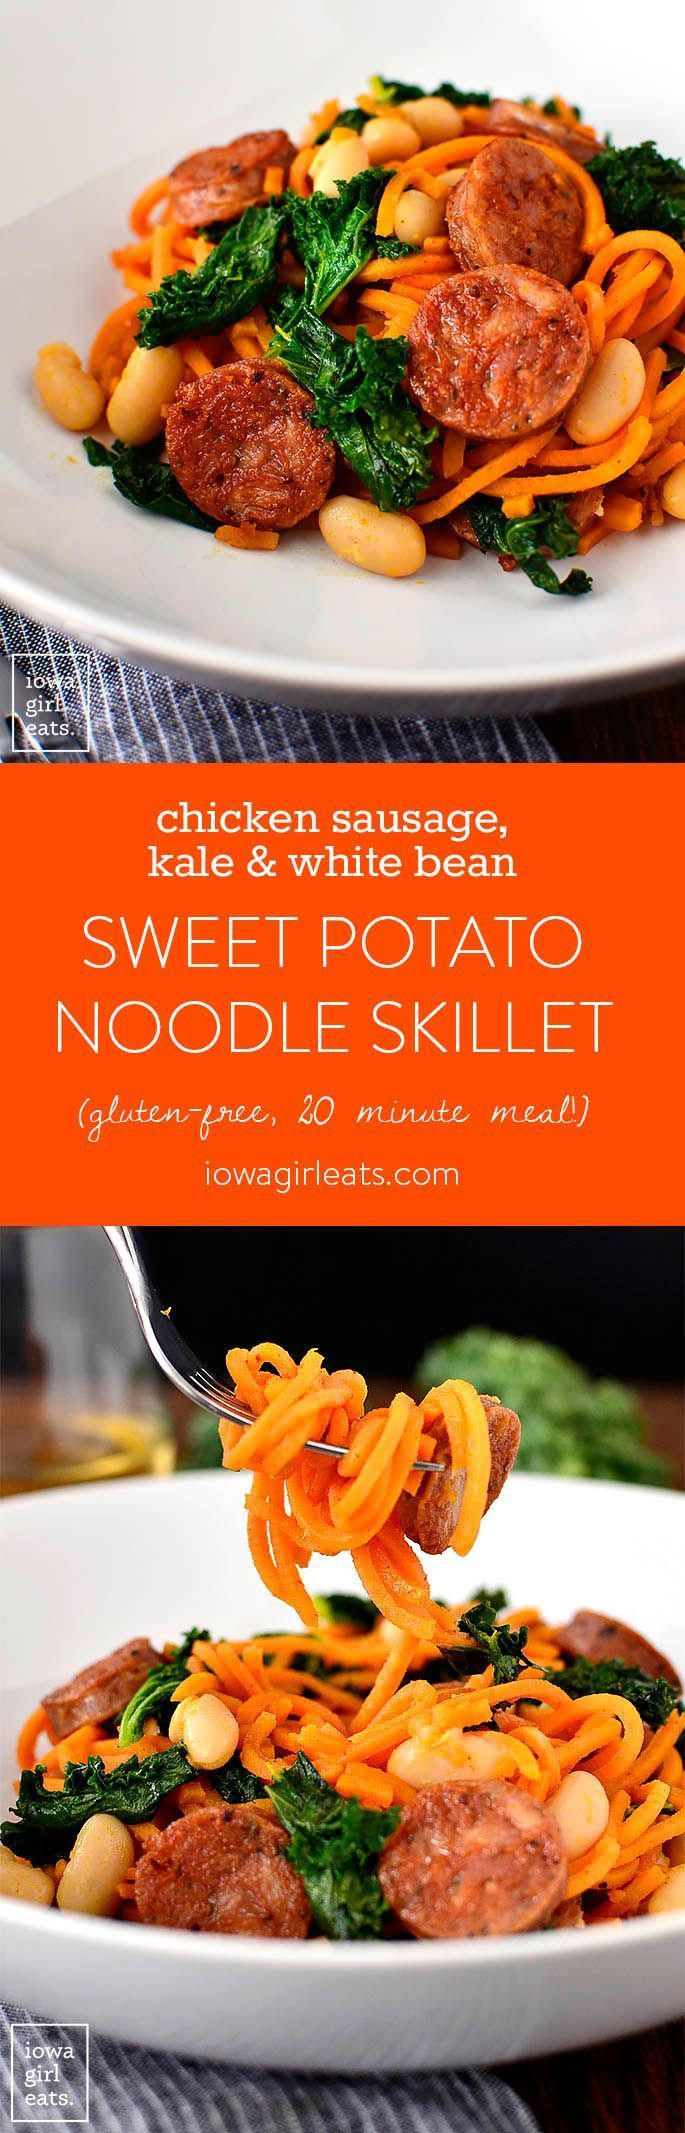 Chicken Sausage, Kale and White Bean Sweet Potato Noodle Skillet is a quick and healthy gluten-free dinner recipe. Ready in 20 minutes or less and full of protein, fiber, and vitamins!   http://iowagirleats.com